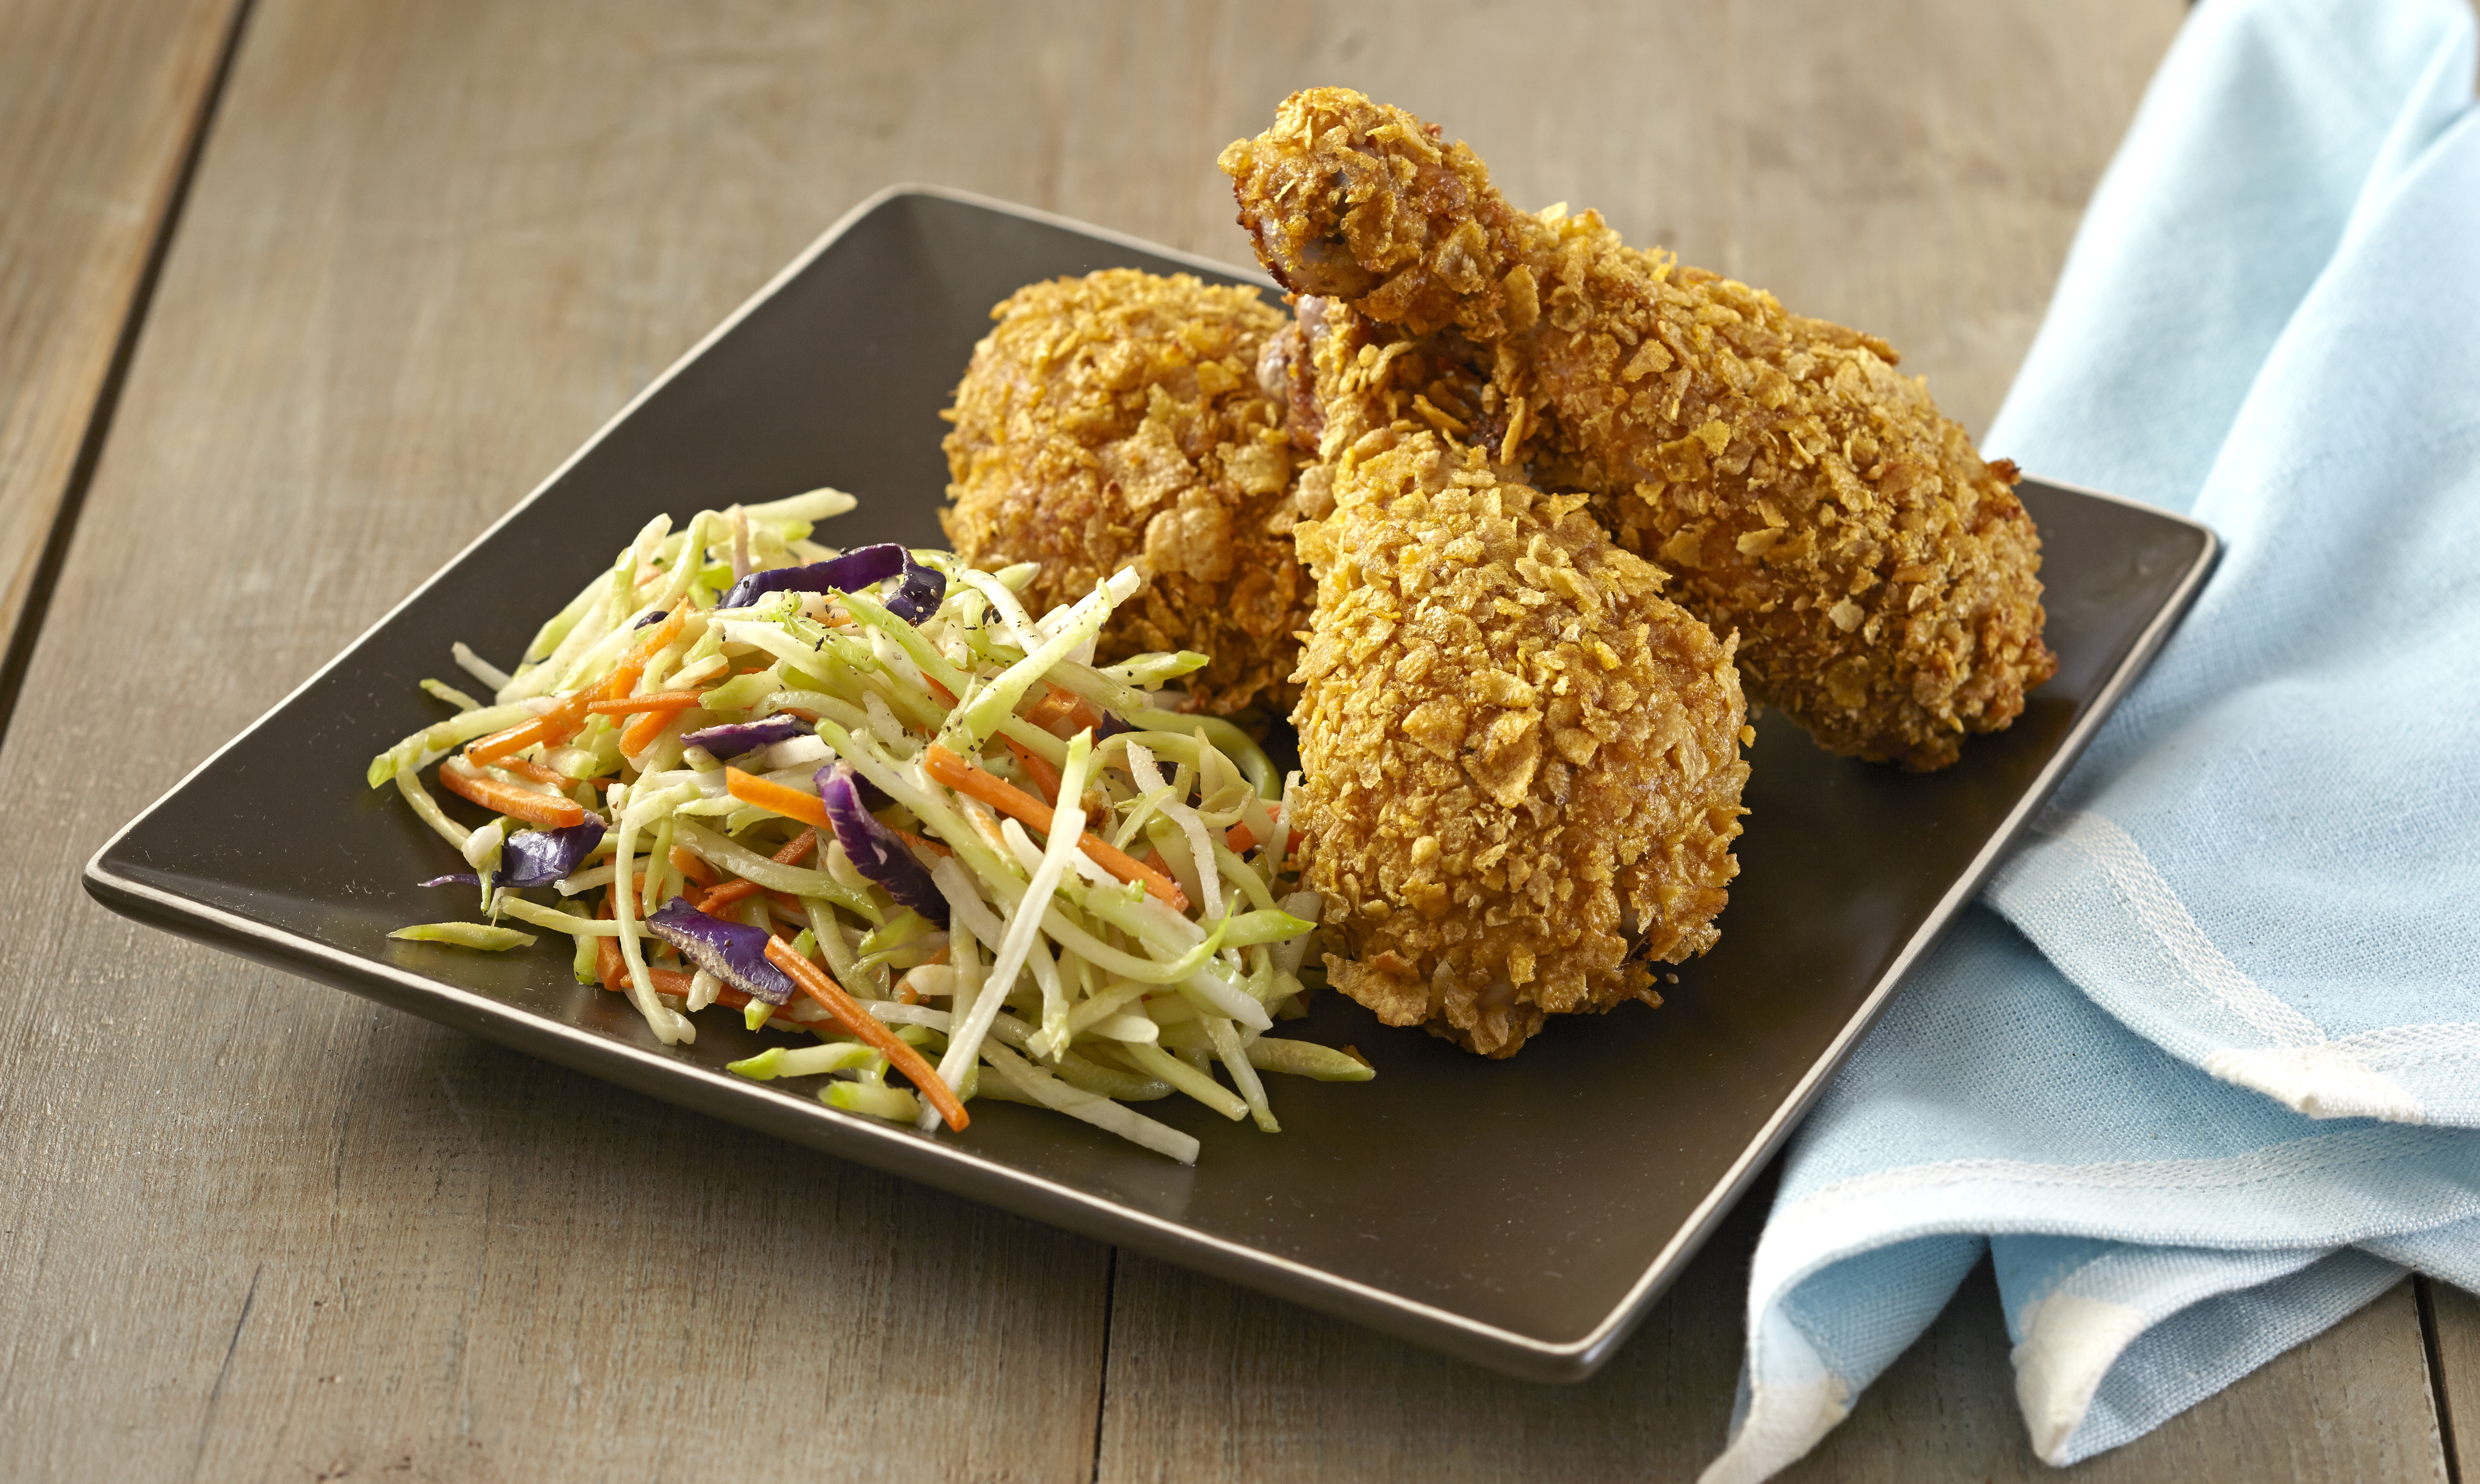 kwg-oven-fried-chicken